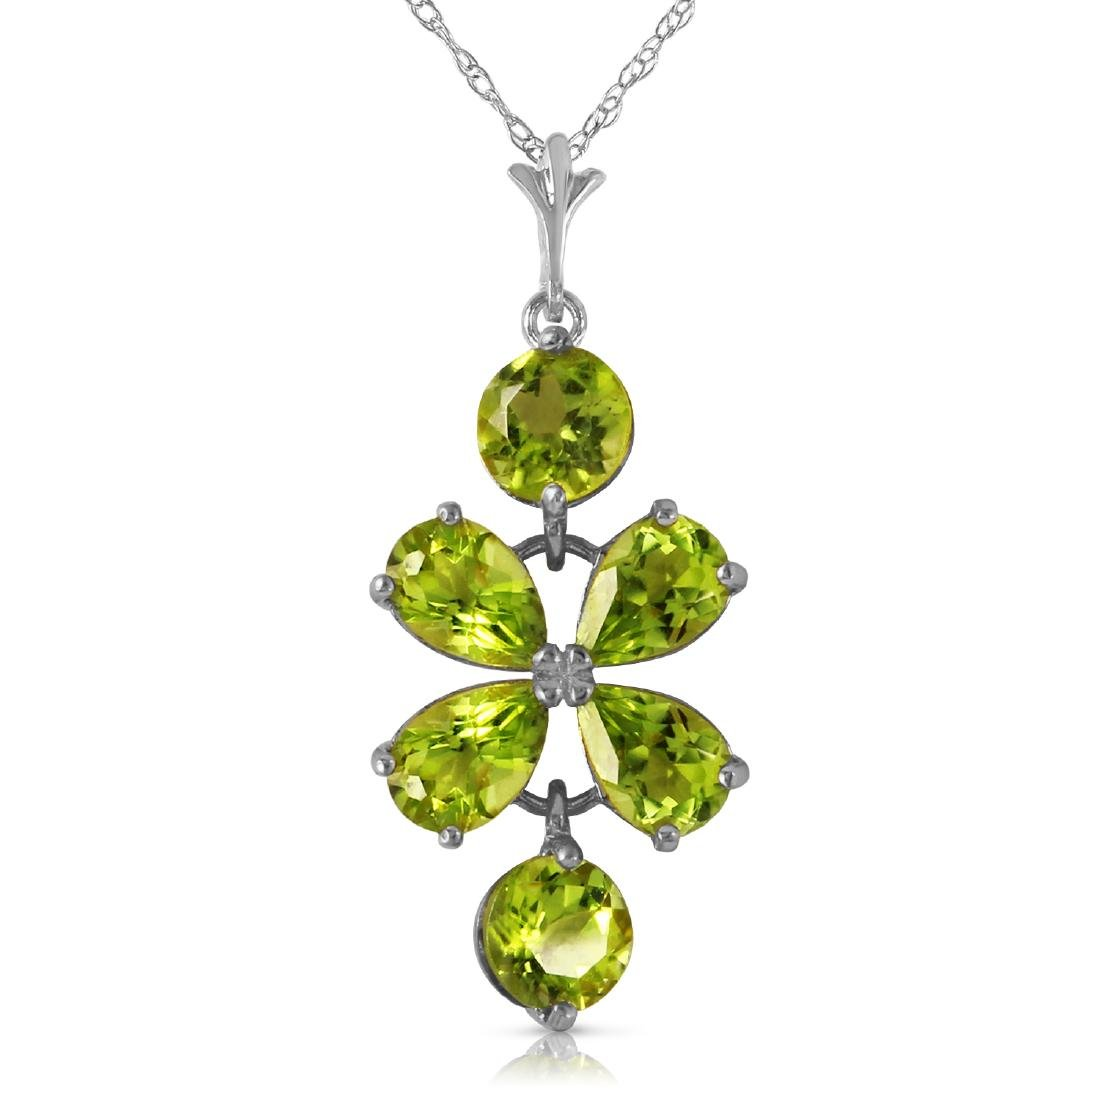 Genuine 3.15 ctw Peridot Necklace Jewelry 14KT White